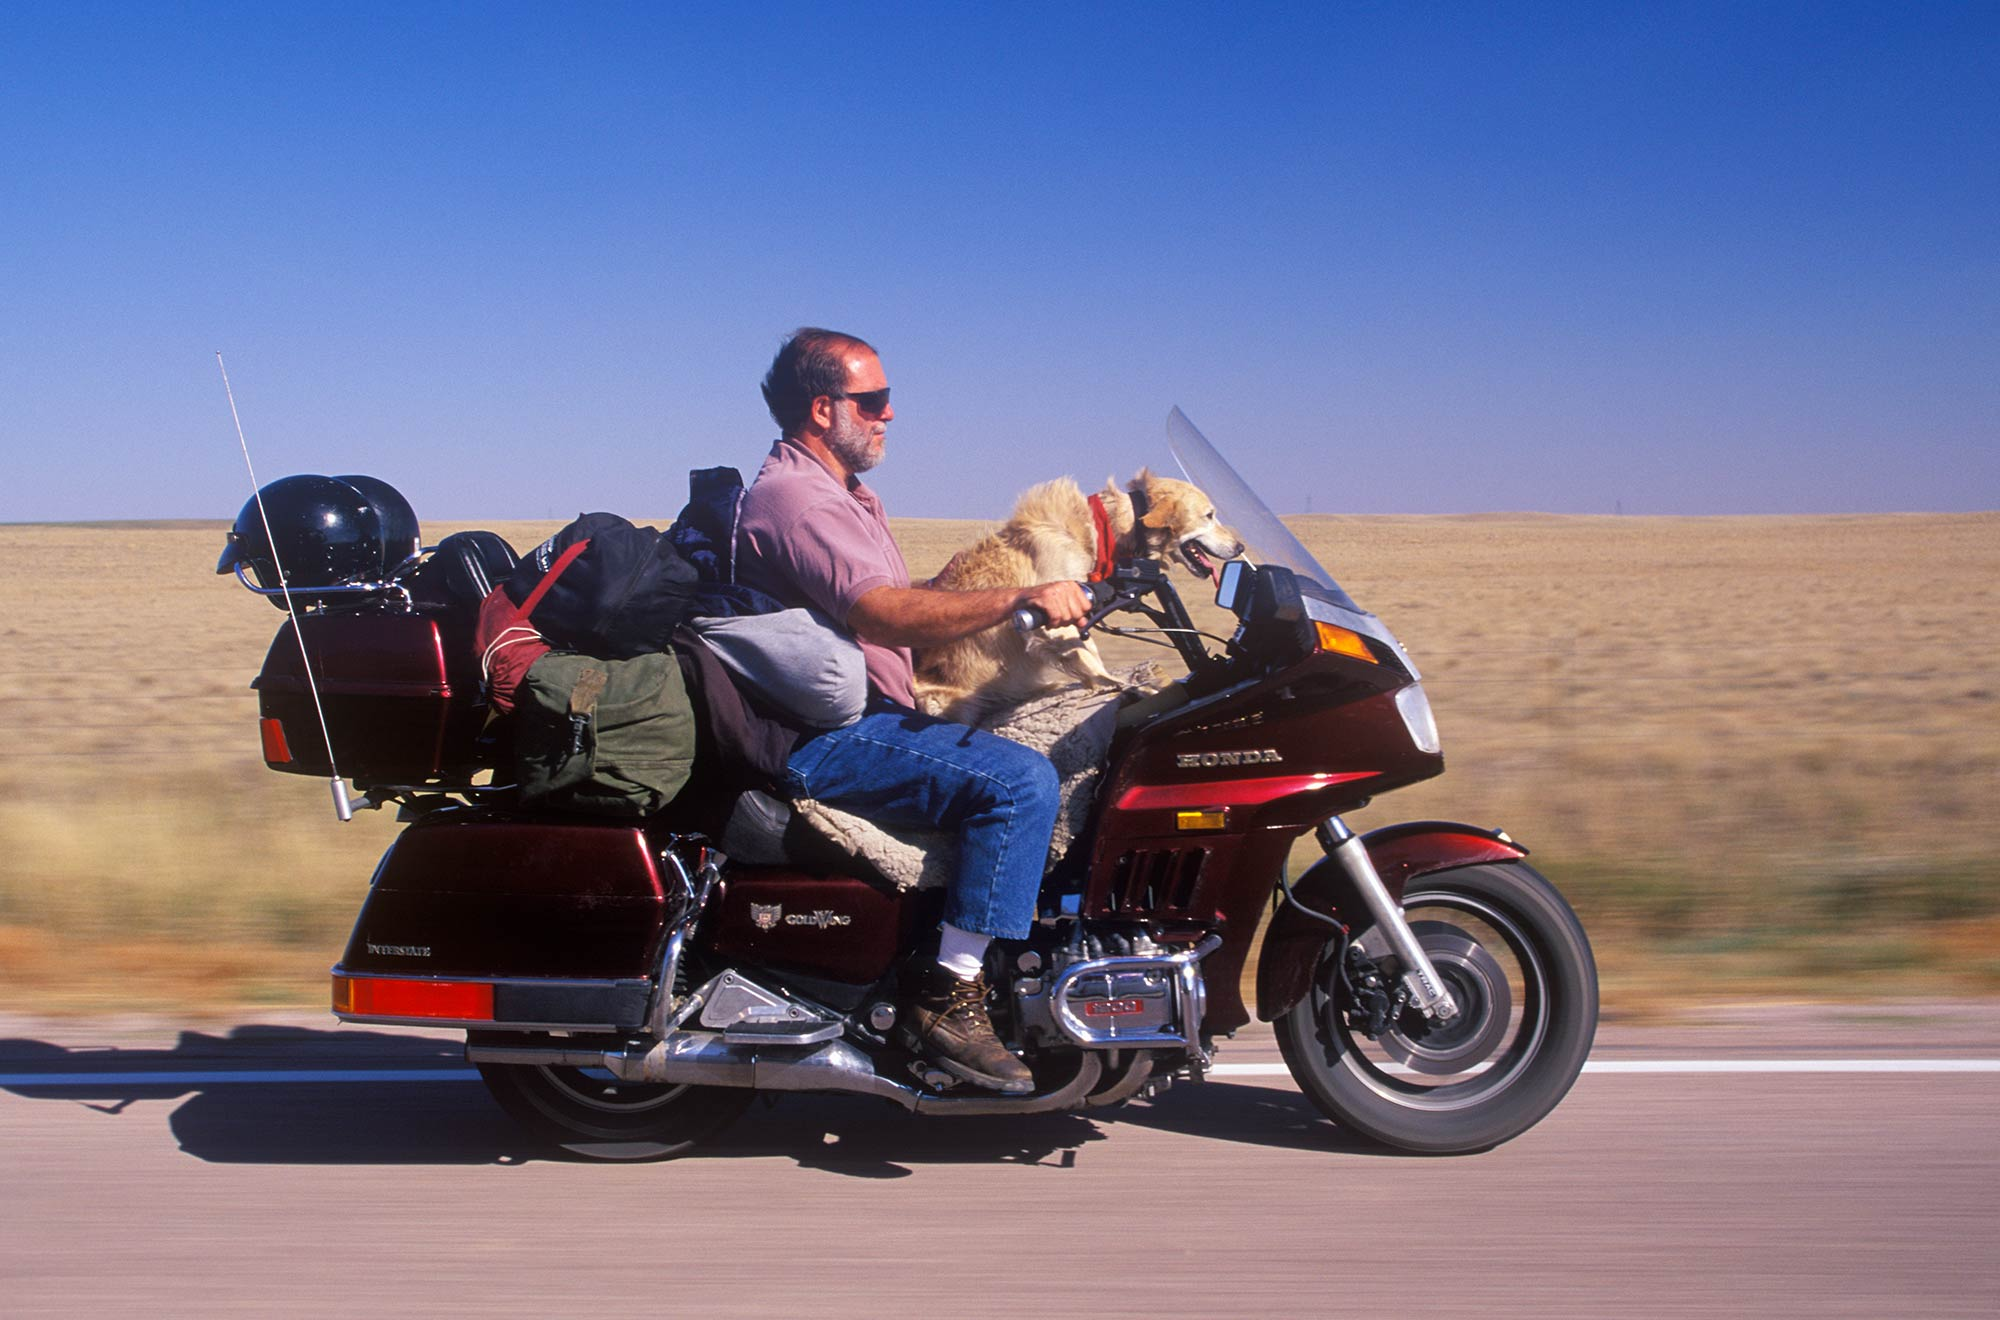 This rider and his dog are ready for the long haul, protected from the wind and elements by the Honda Gold Wing's tall windshield